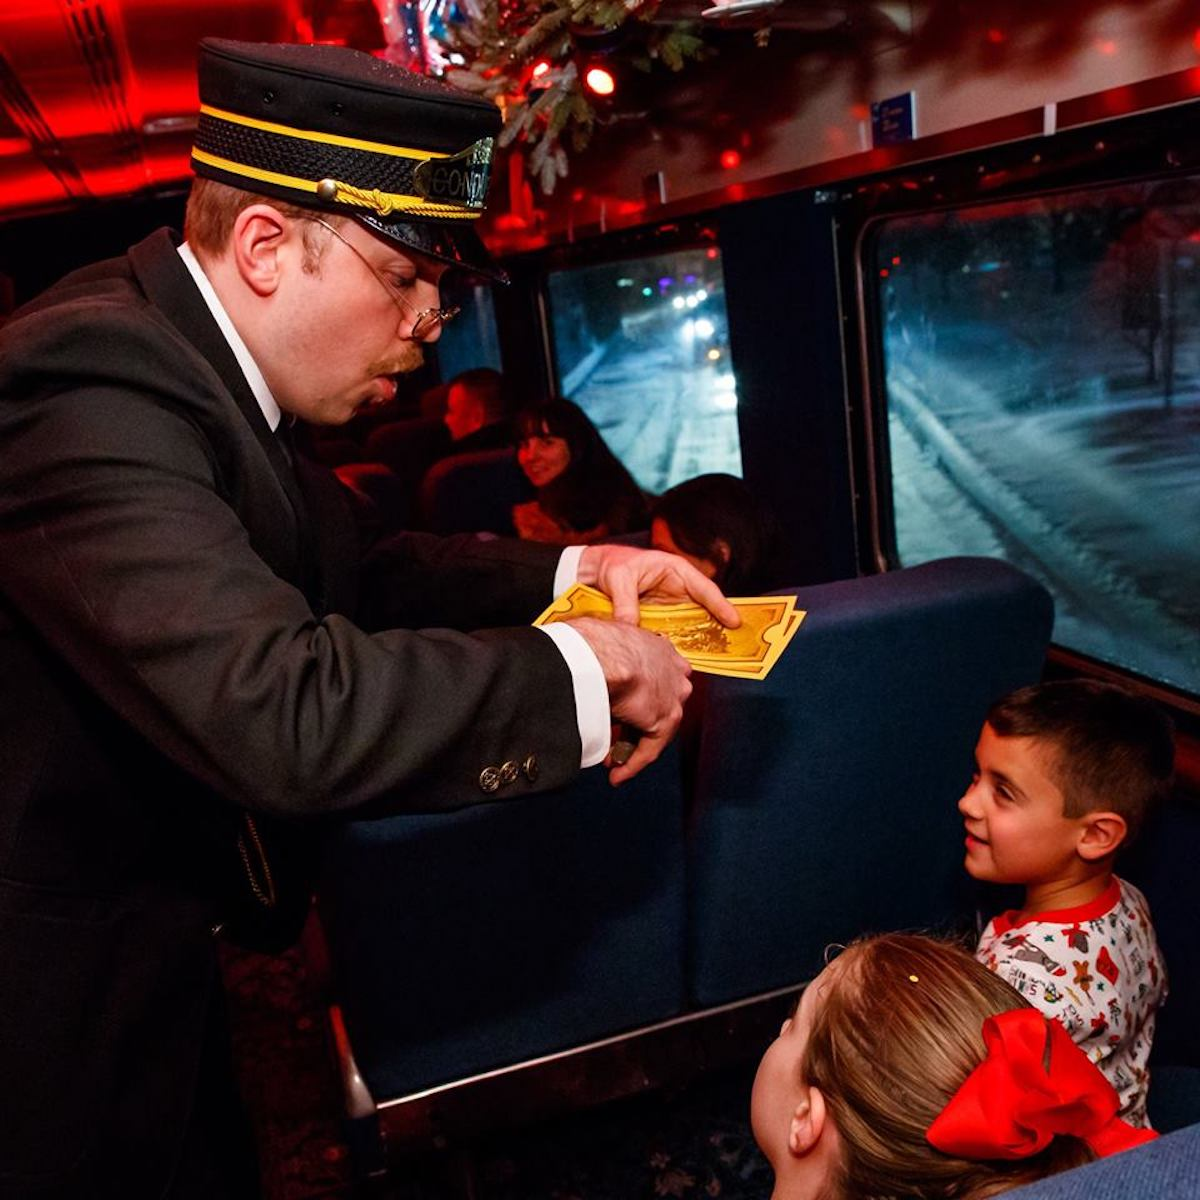 Train conductor clipping ticket on The Polar Express Train